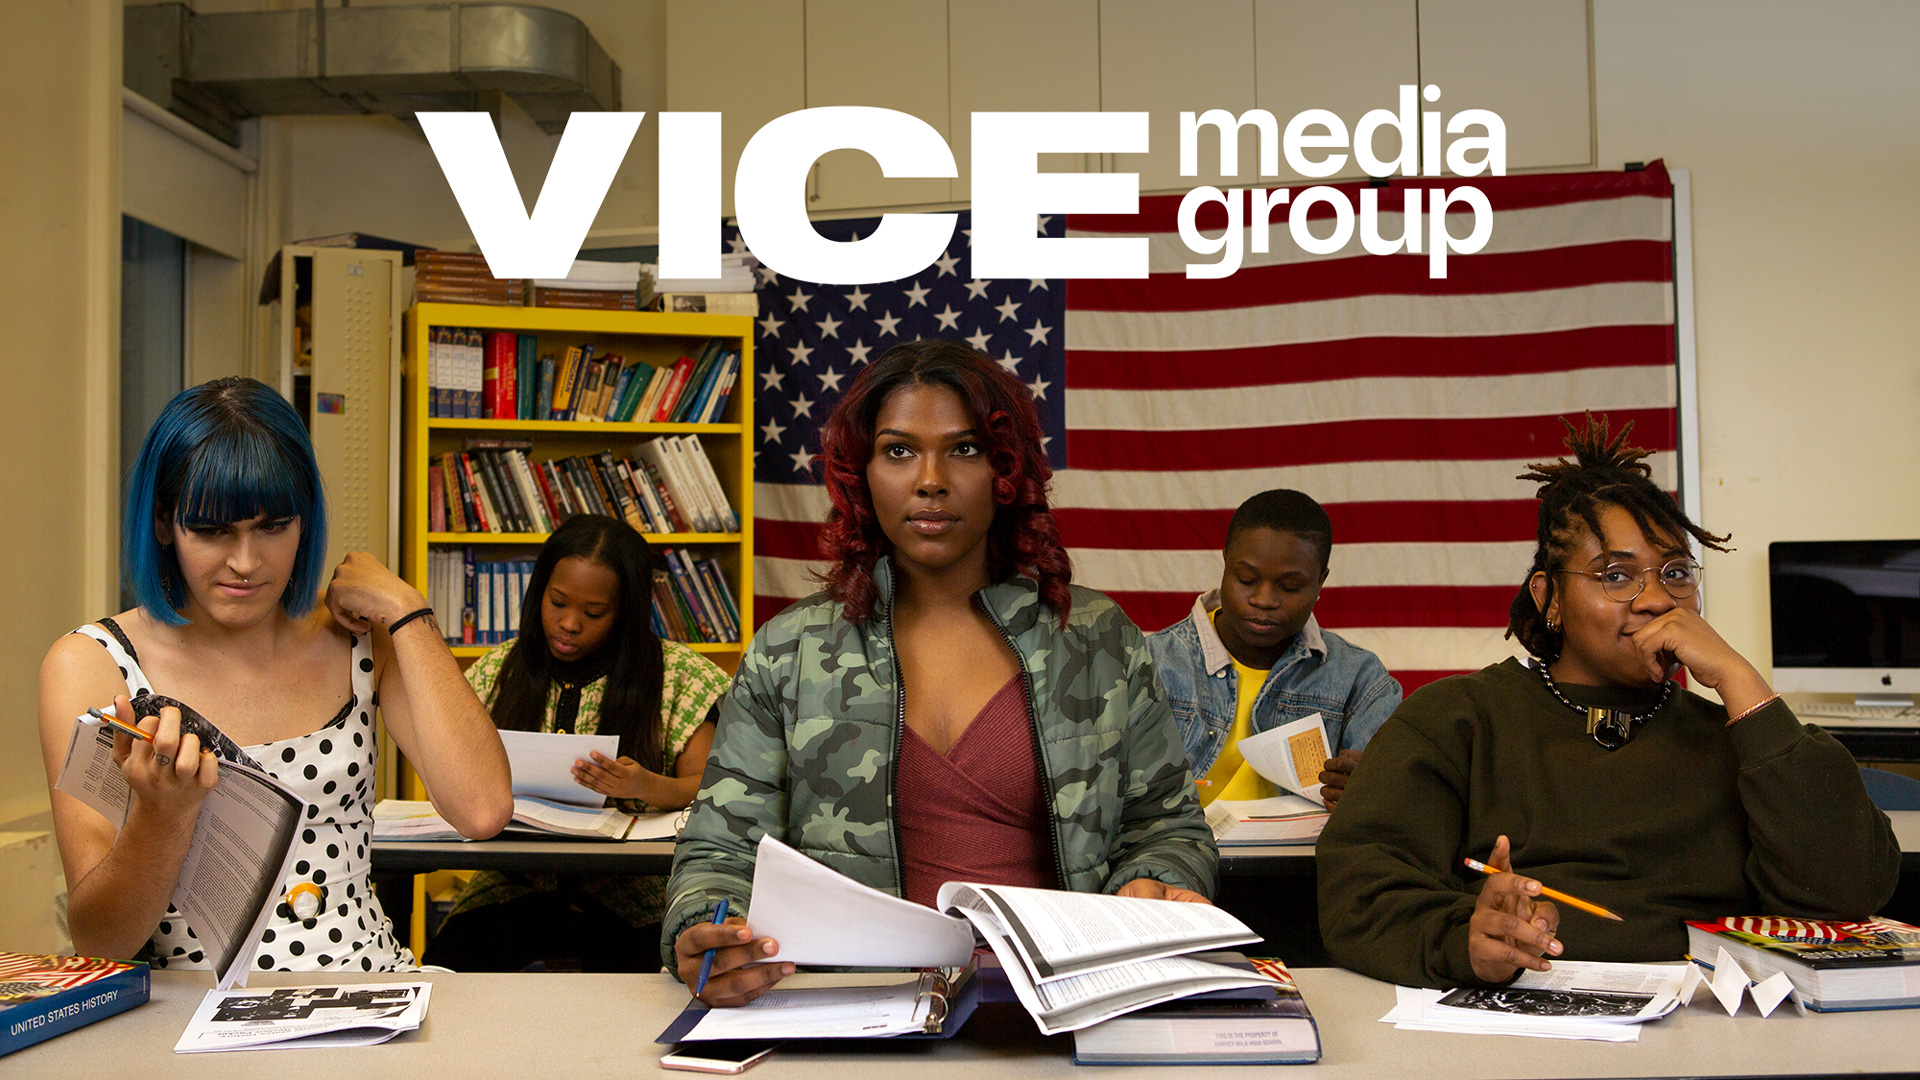 Vice Media Group is focusing on diversity, equity and inclusion.